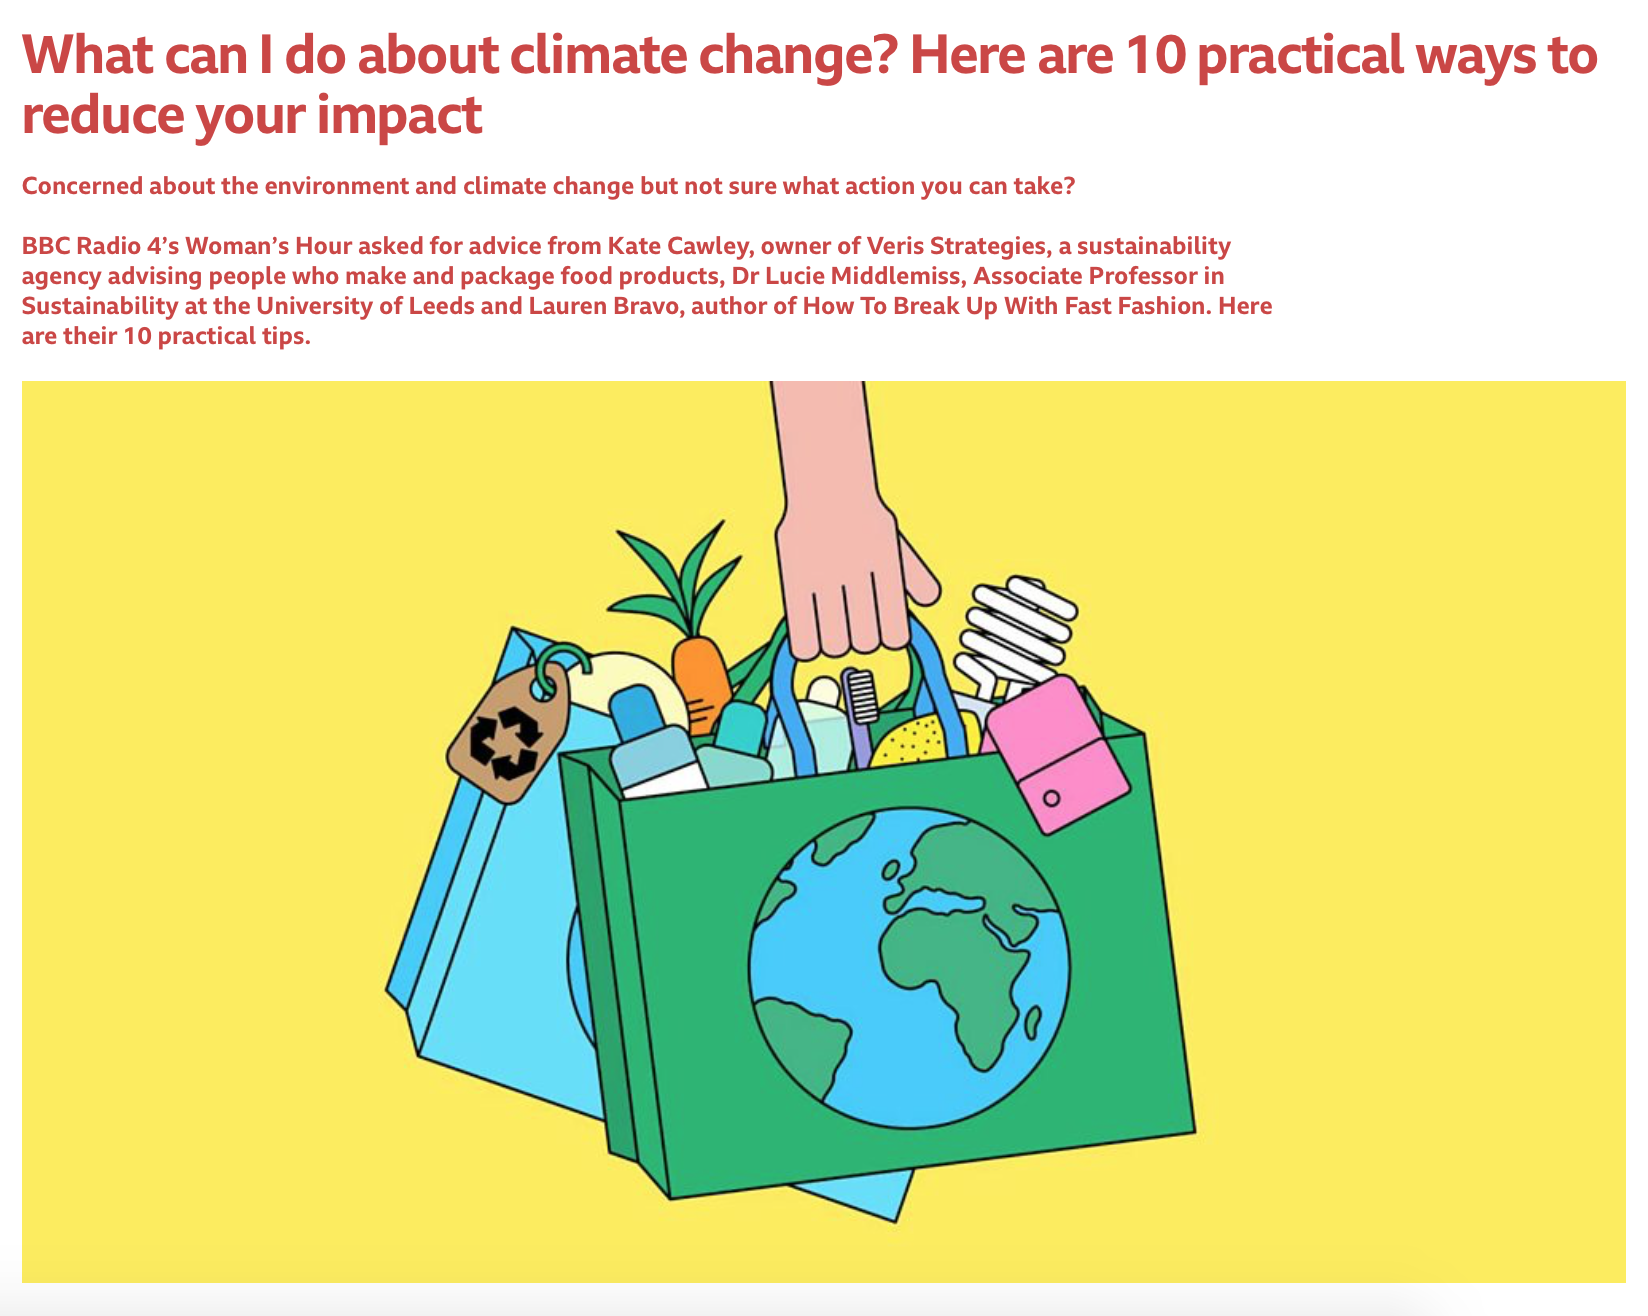 Ten practical ways to reduce your impact - BBC WOMAN'S HOUR